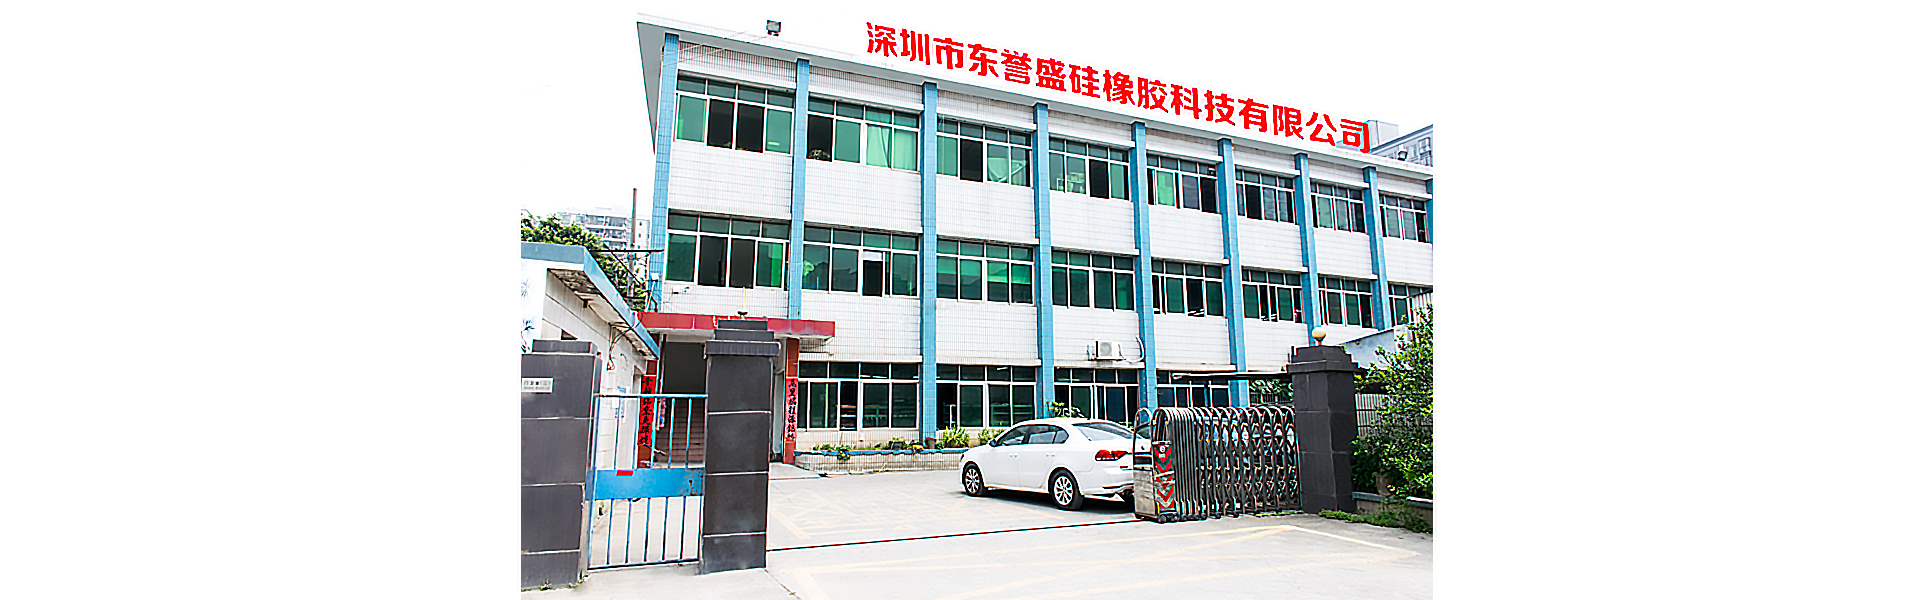 Shenzhen Dongyusheng Silicone&Rubber Technology Co., Ltd